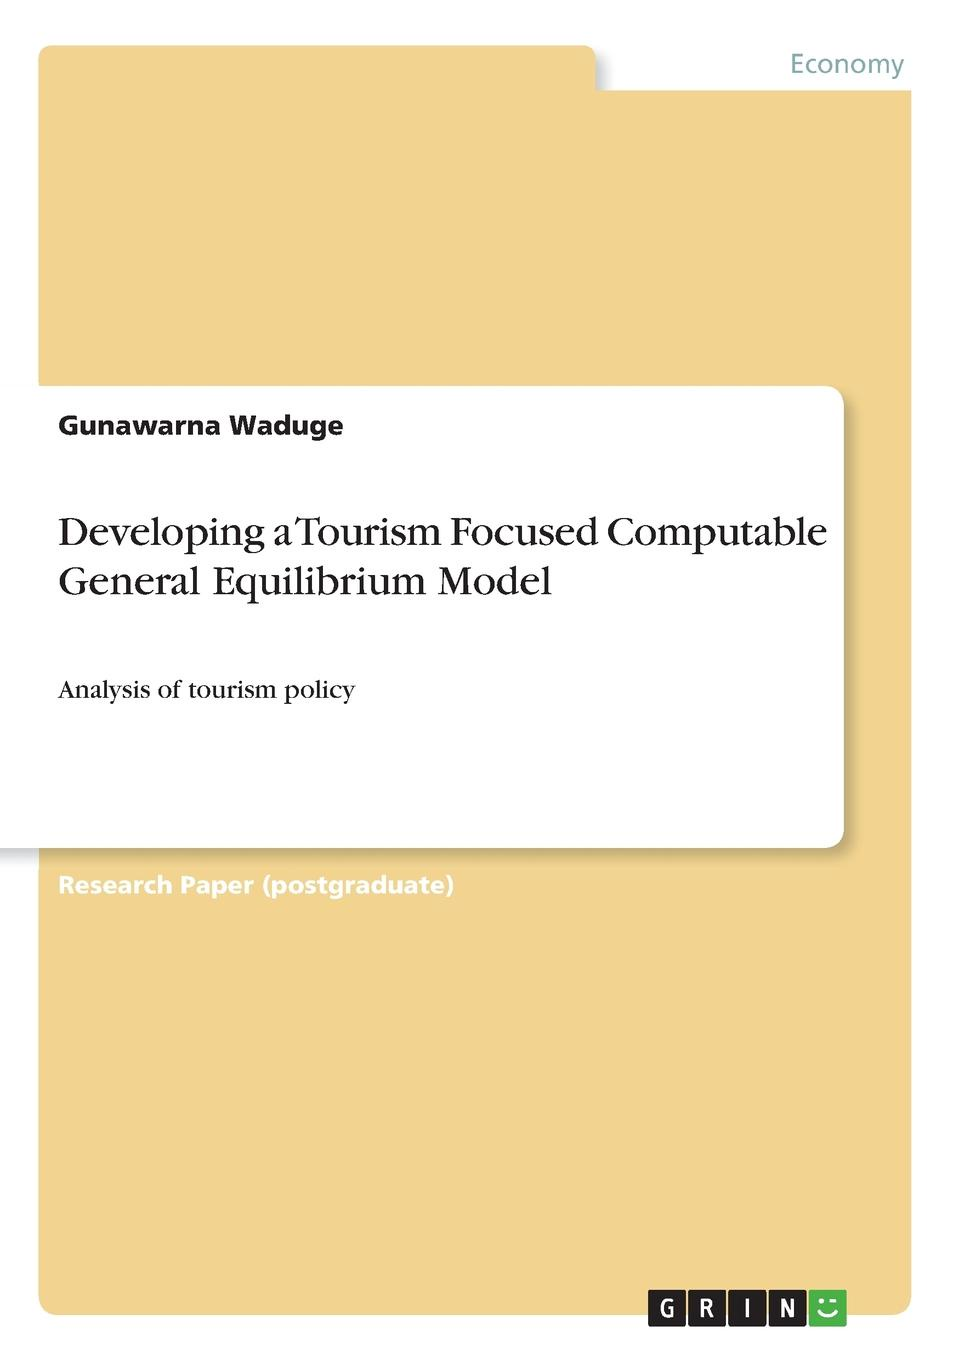 Gunawarna Waduge Developing a Tourism Focused Computable General Equilibrium Model jorinda ballering a tourism potential analysis of lundu district in malaysian borneo